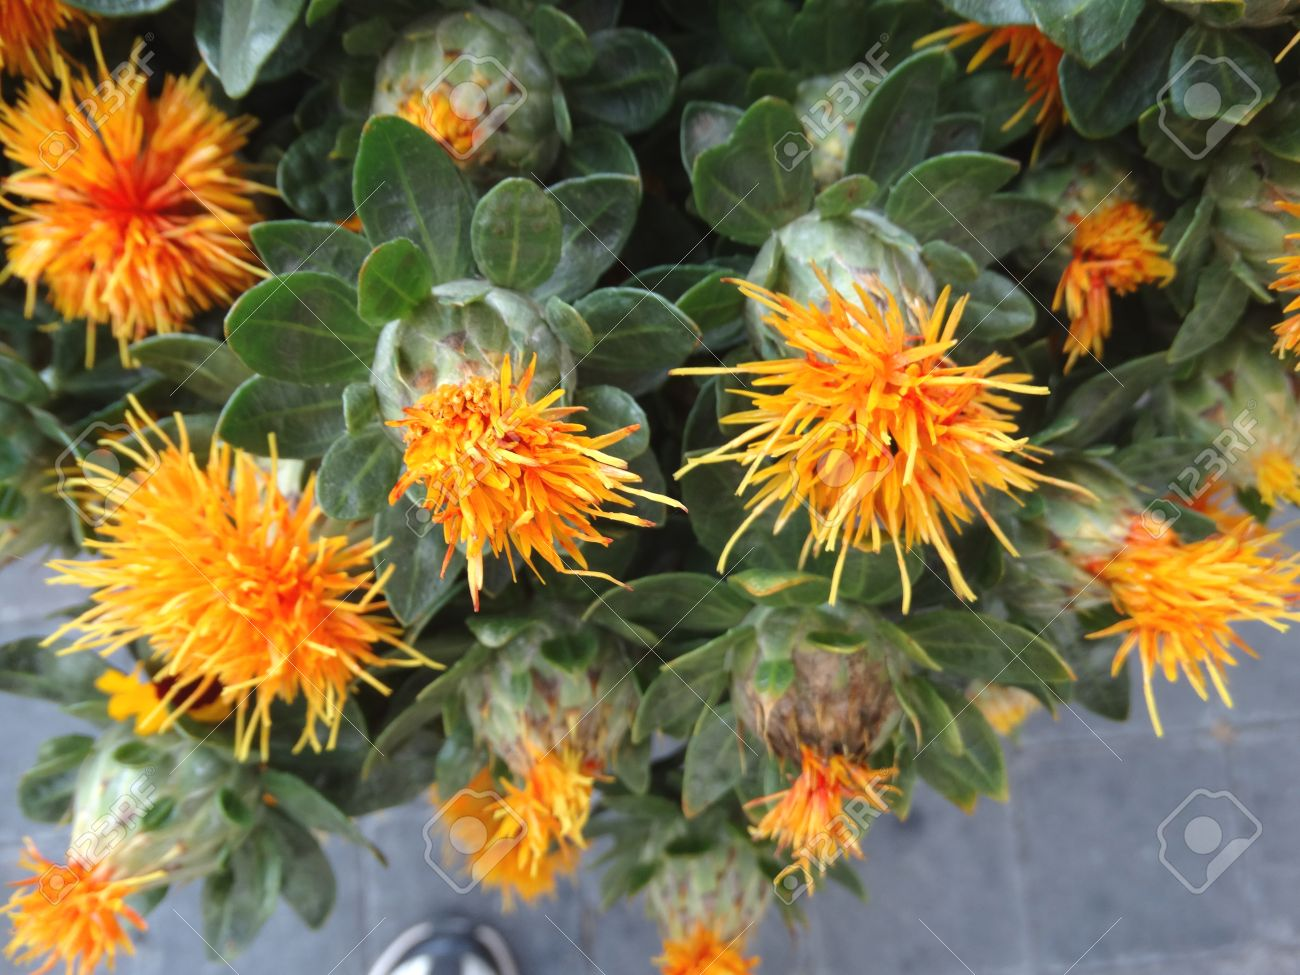 Safflower Carthamus Tinctorius Cultivated Herbaceous Plant Stock Photo Picture And Royalty Free Image Image 34664128